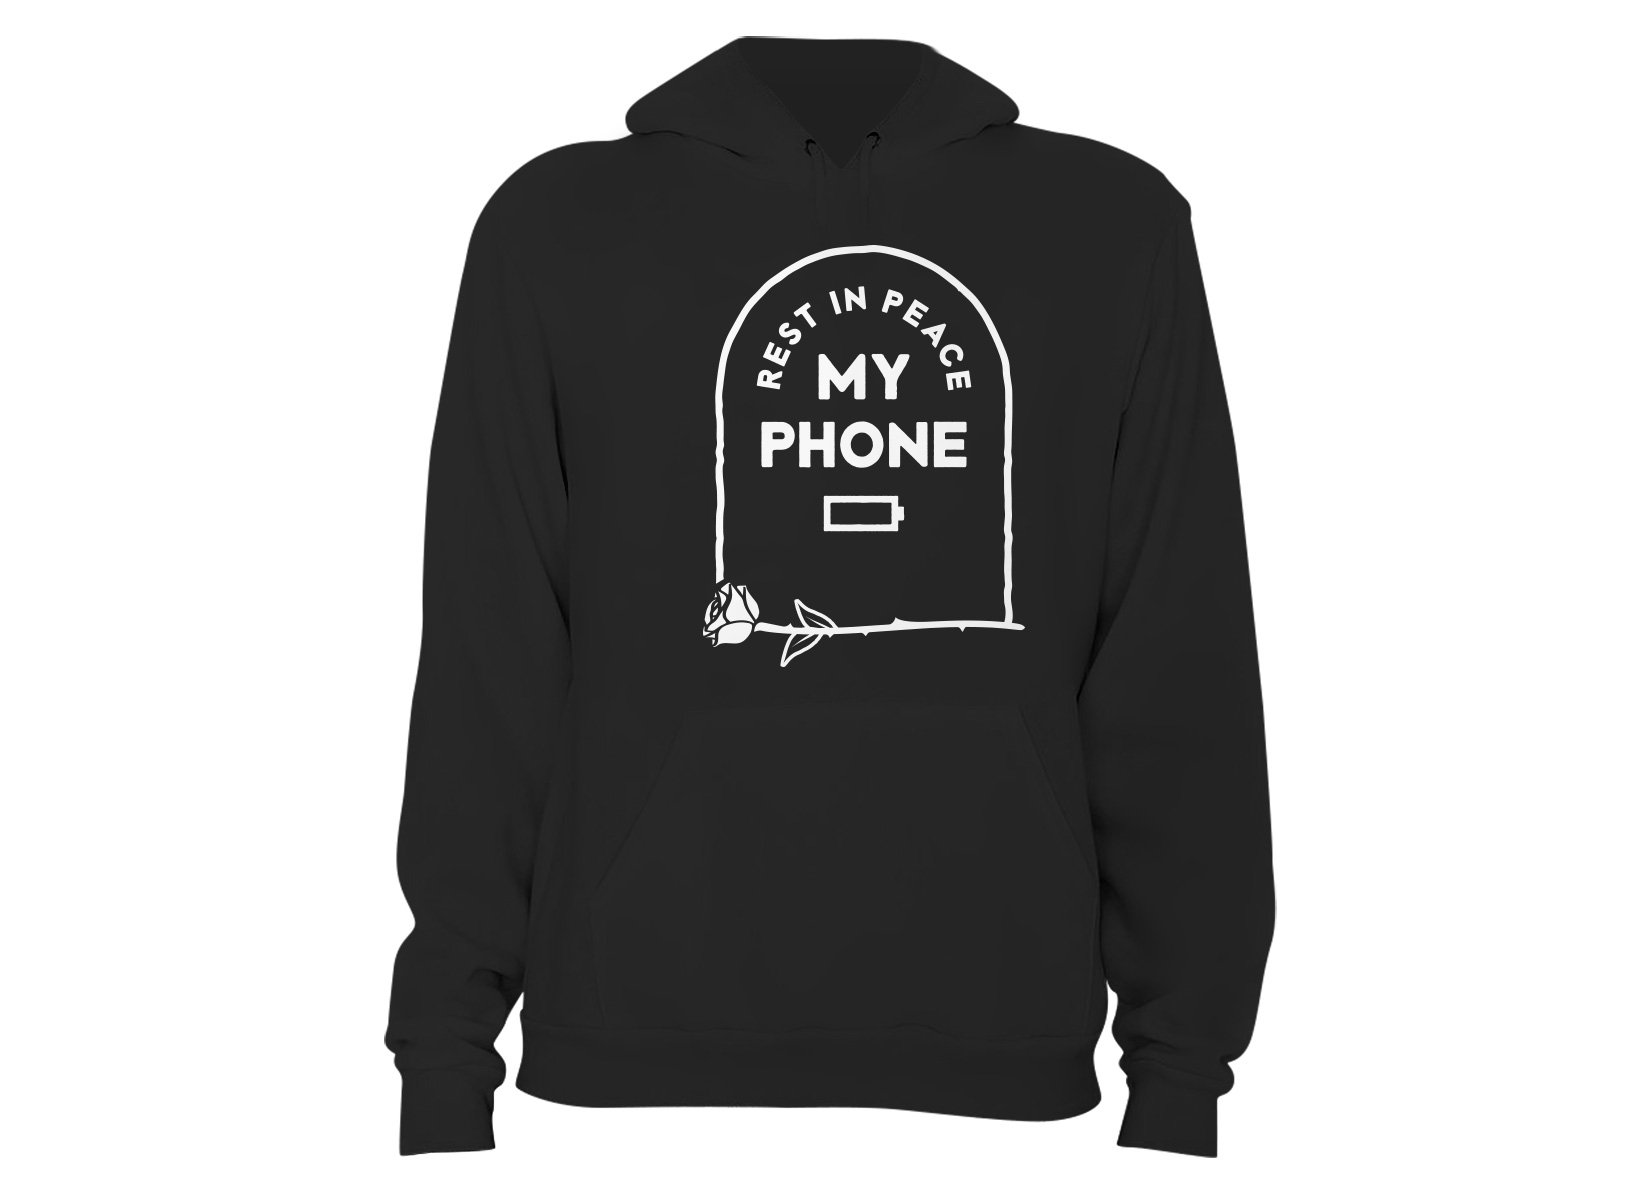 RIP My Phone on Hoodie